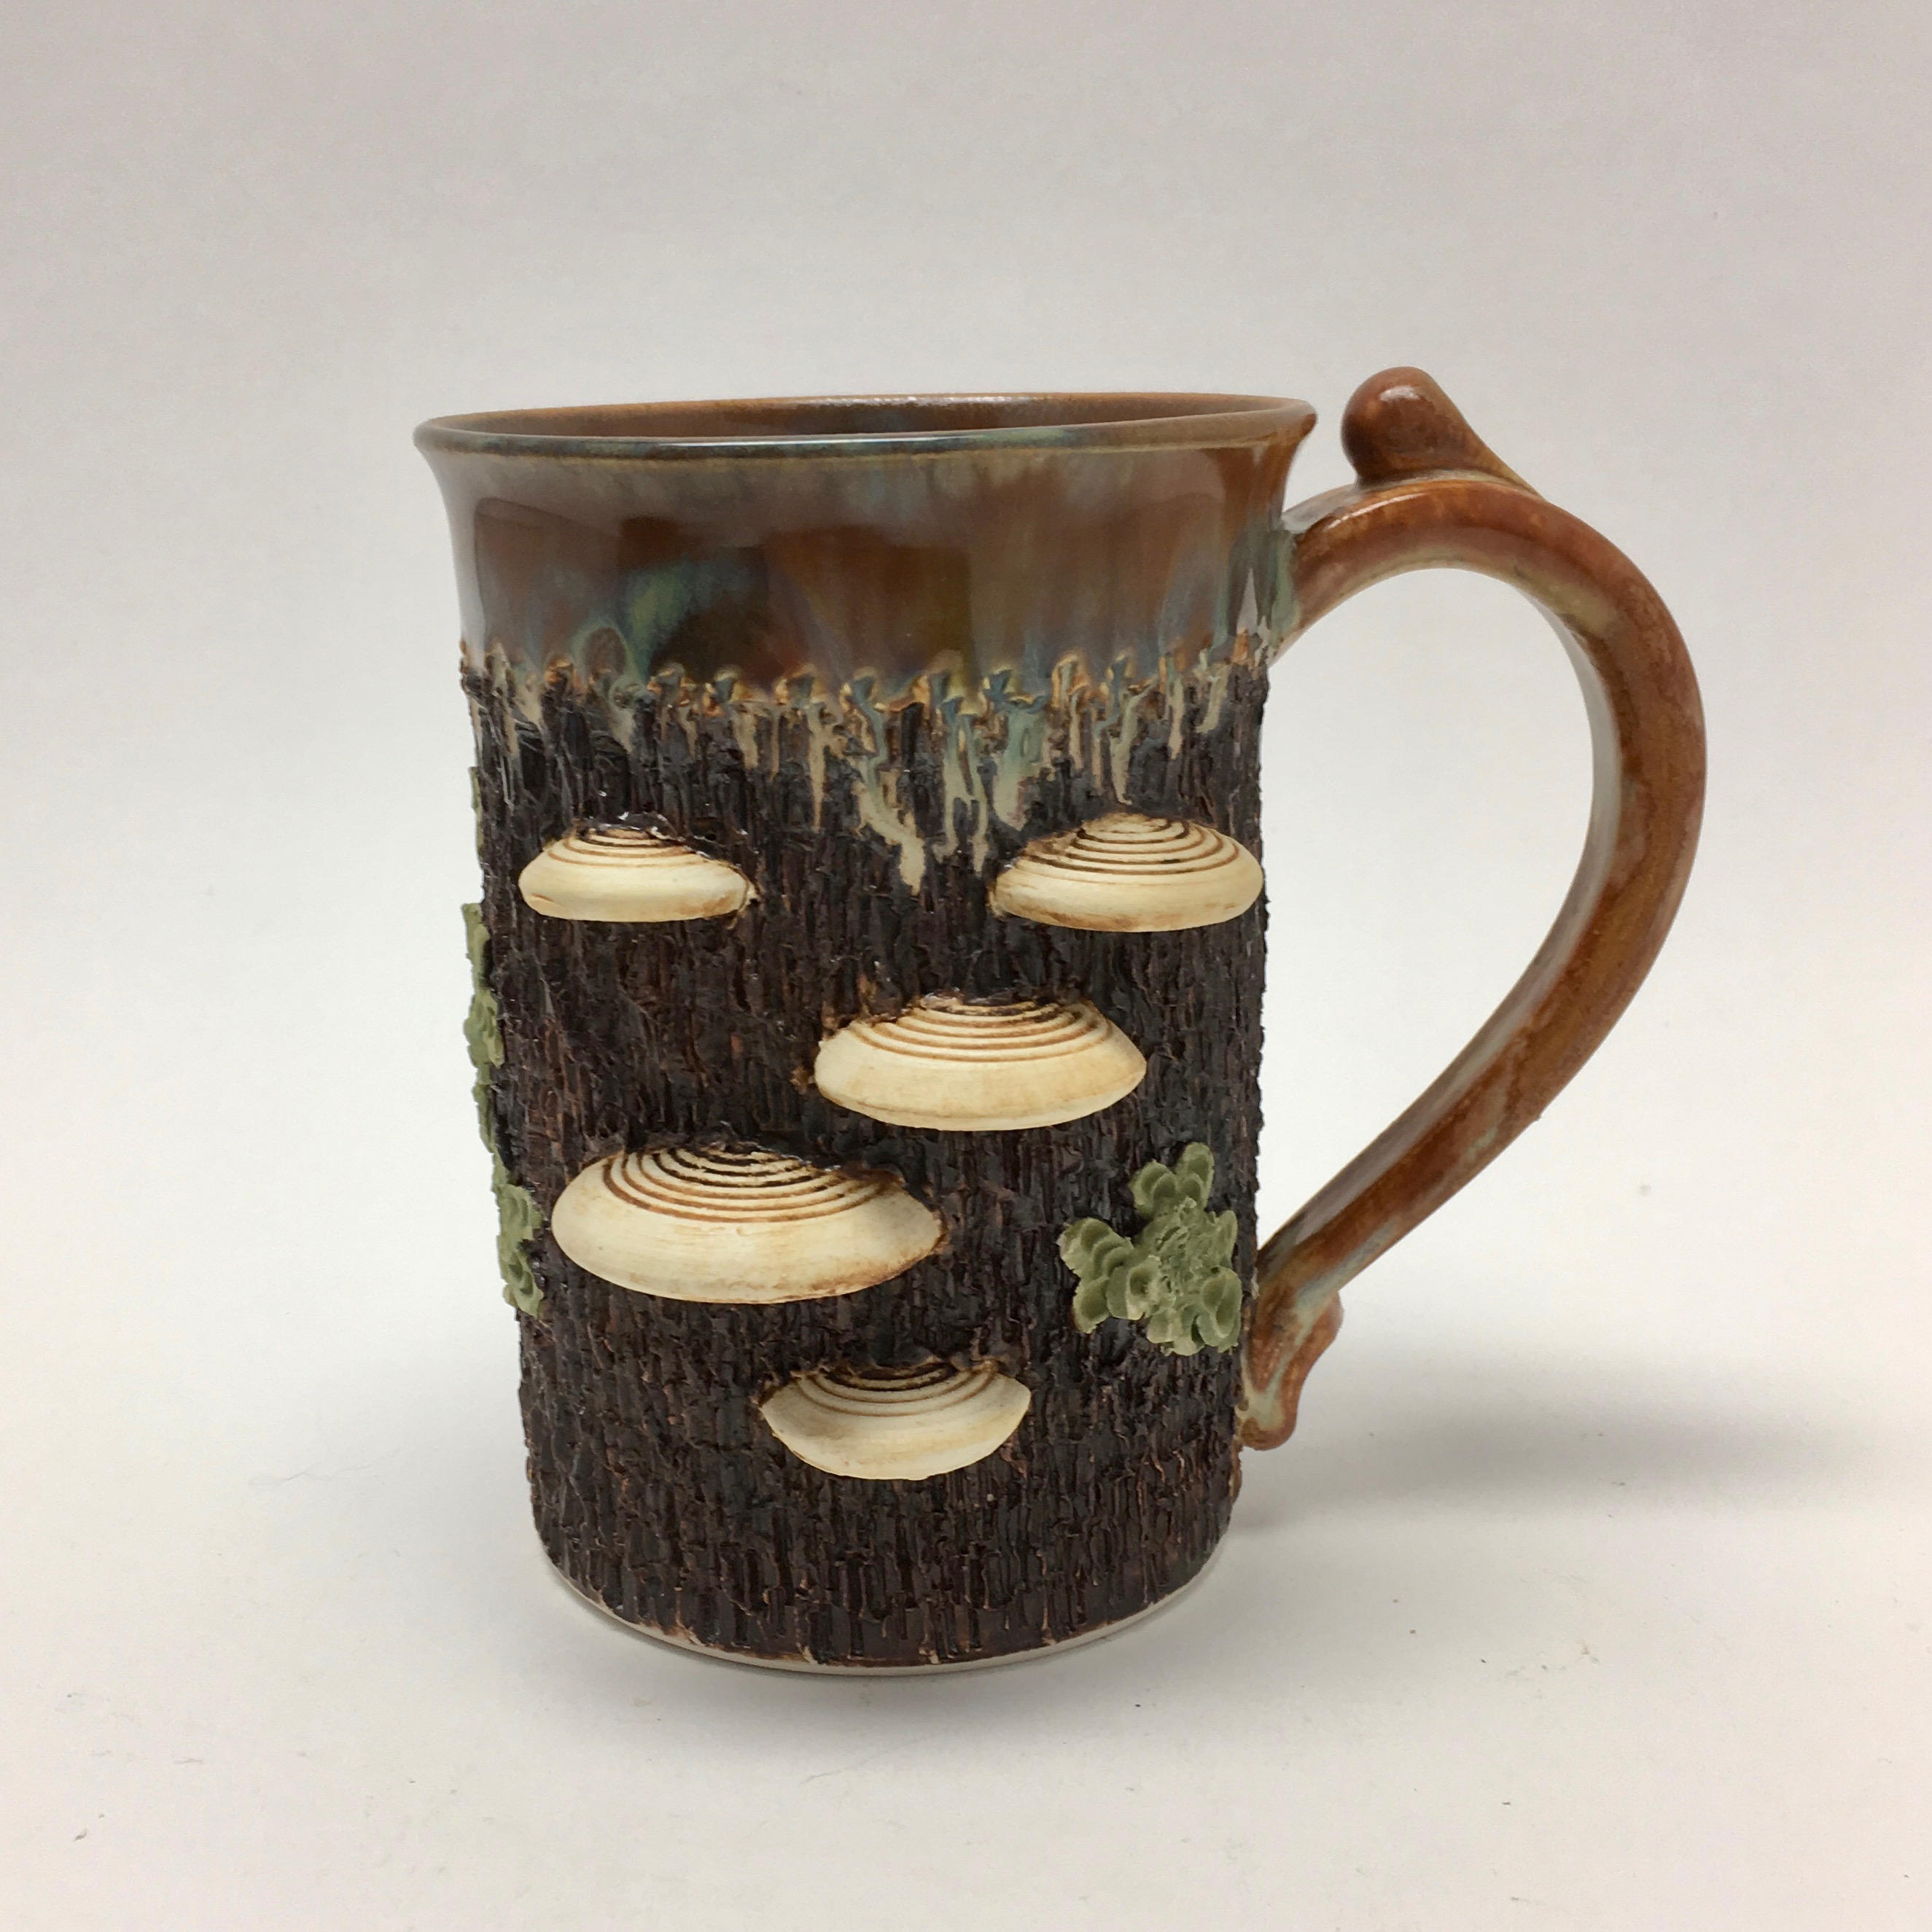 Mug made by Richard Roth with lichen and mushrooms for any forager at the Littleton League of NH Craftsmen , great gift